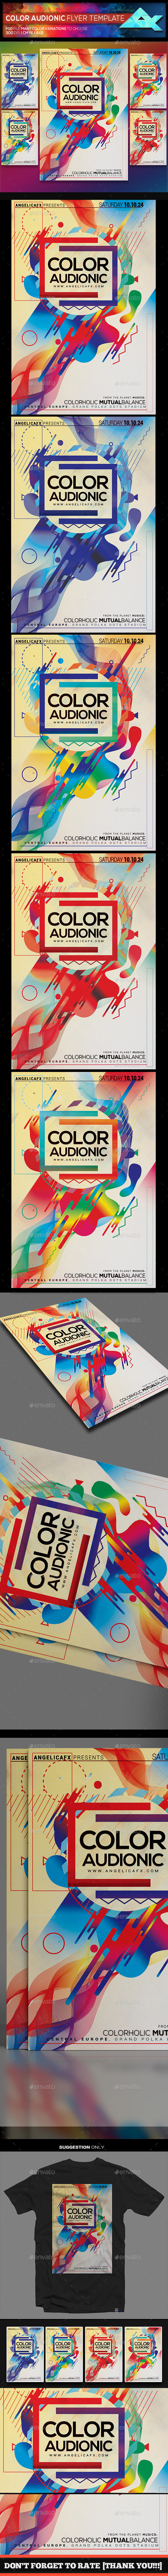 Color Audionic Flyer Template - Events Flyers